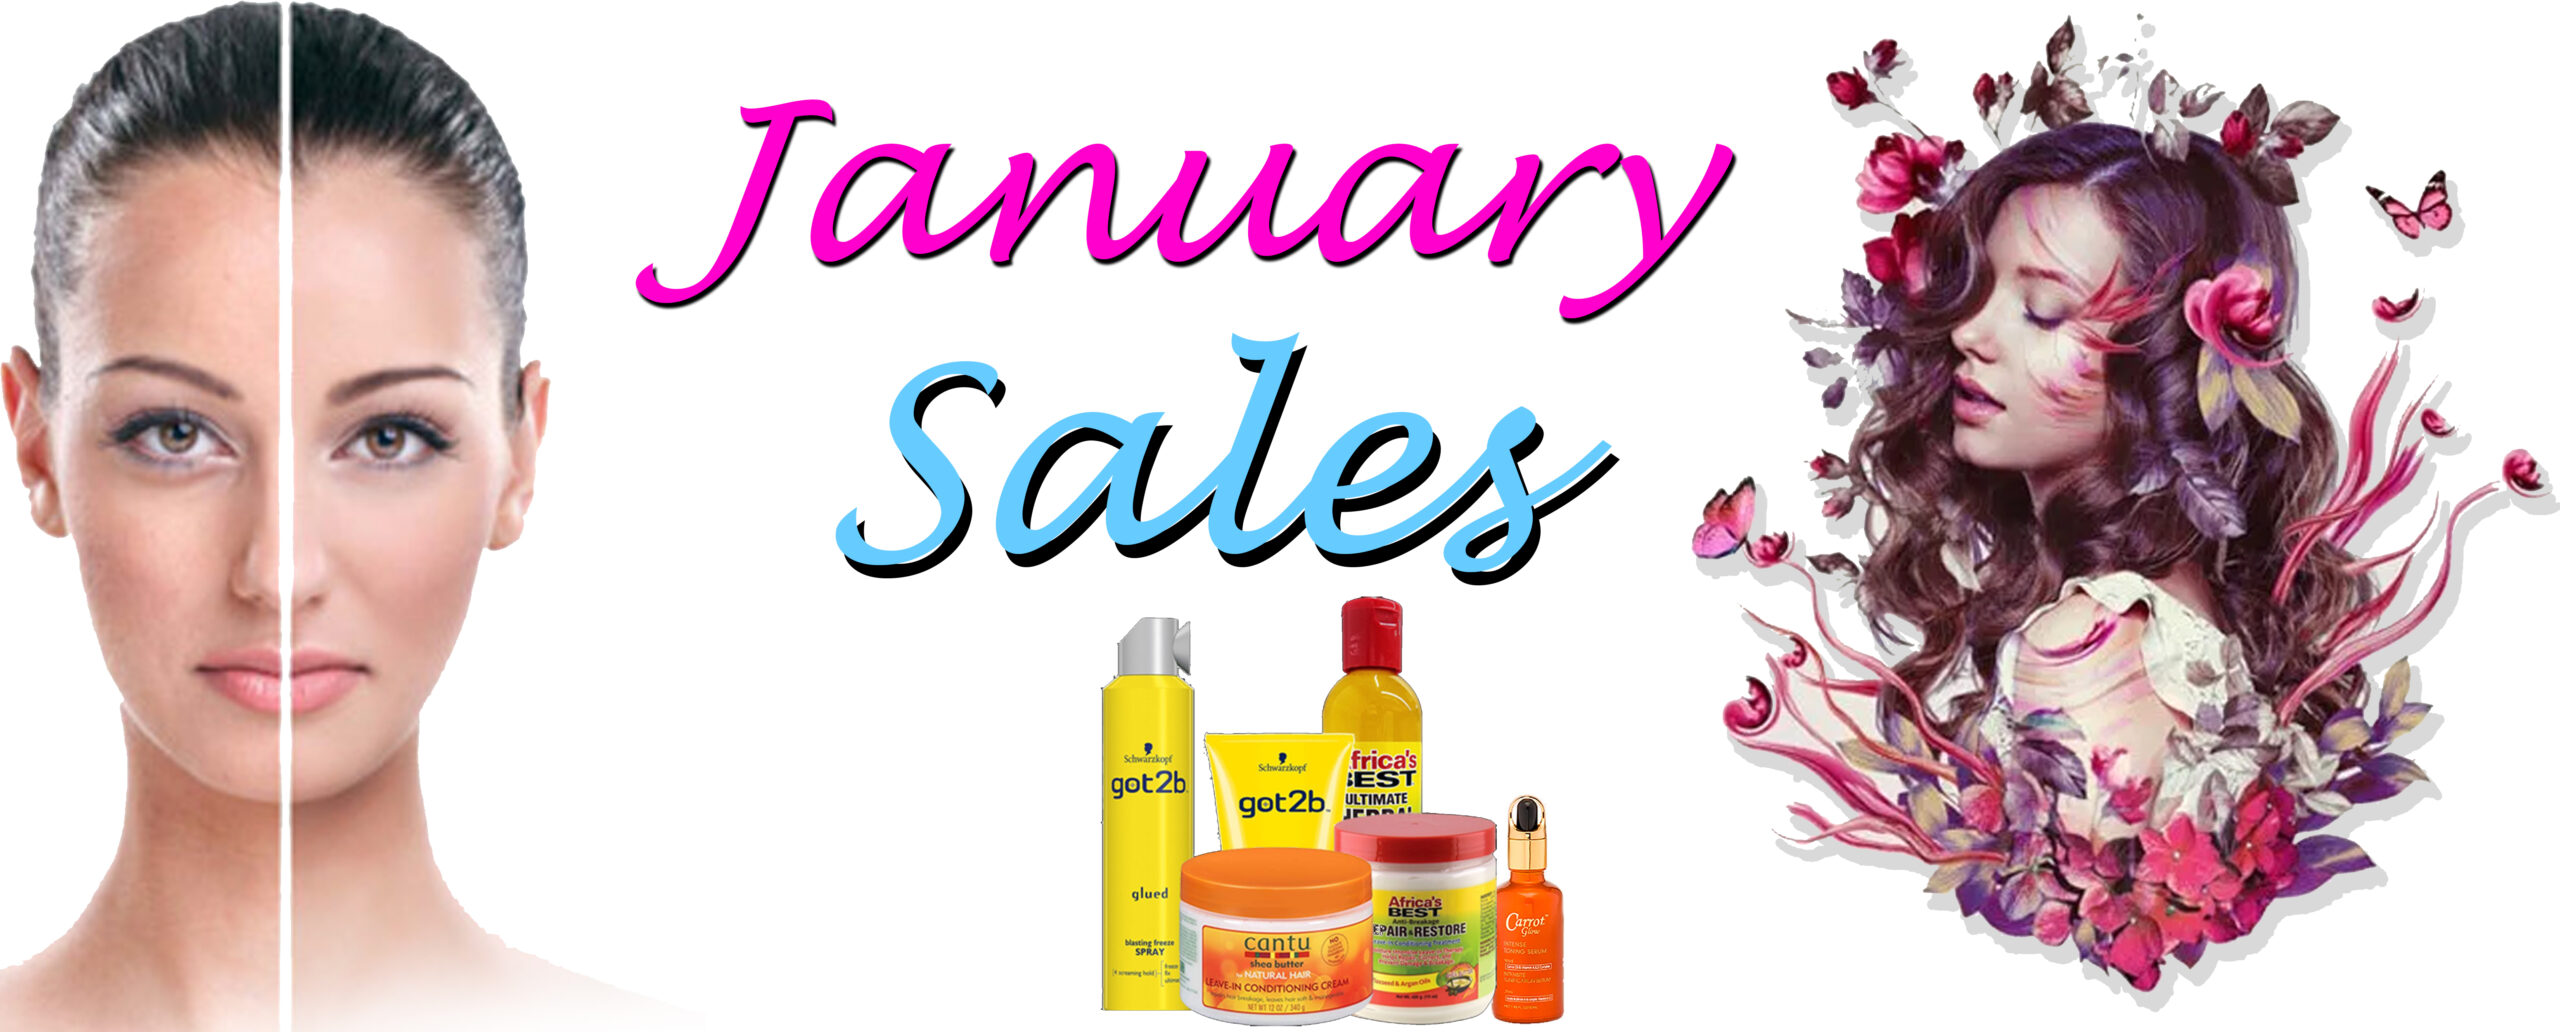 OBS January sales